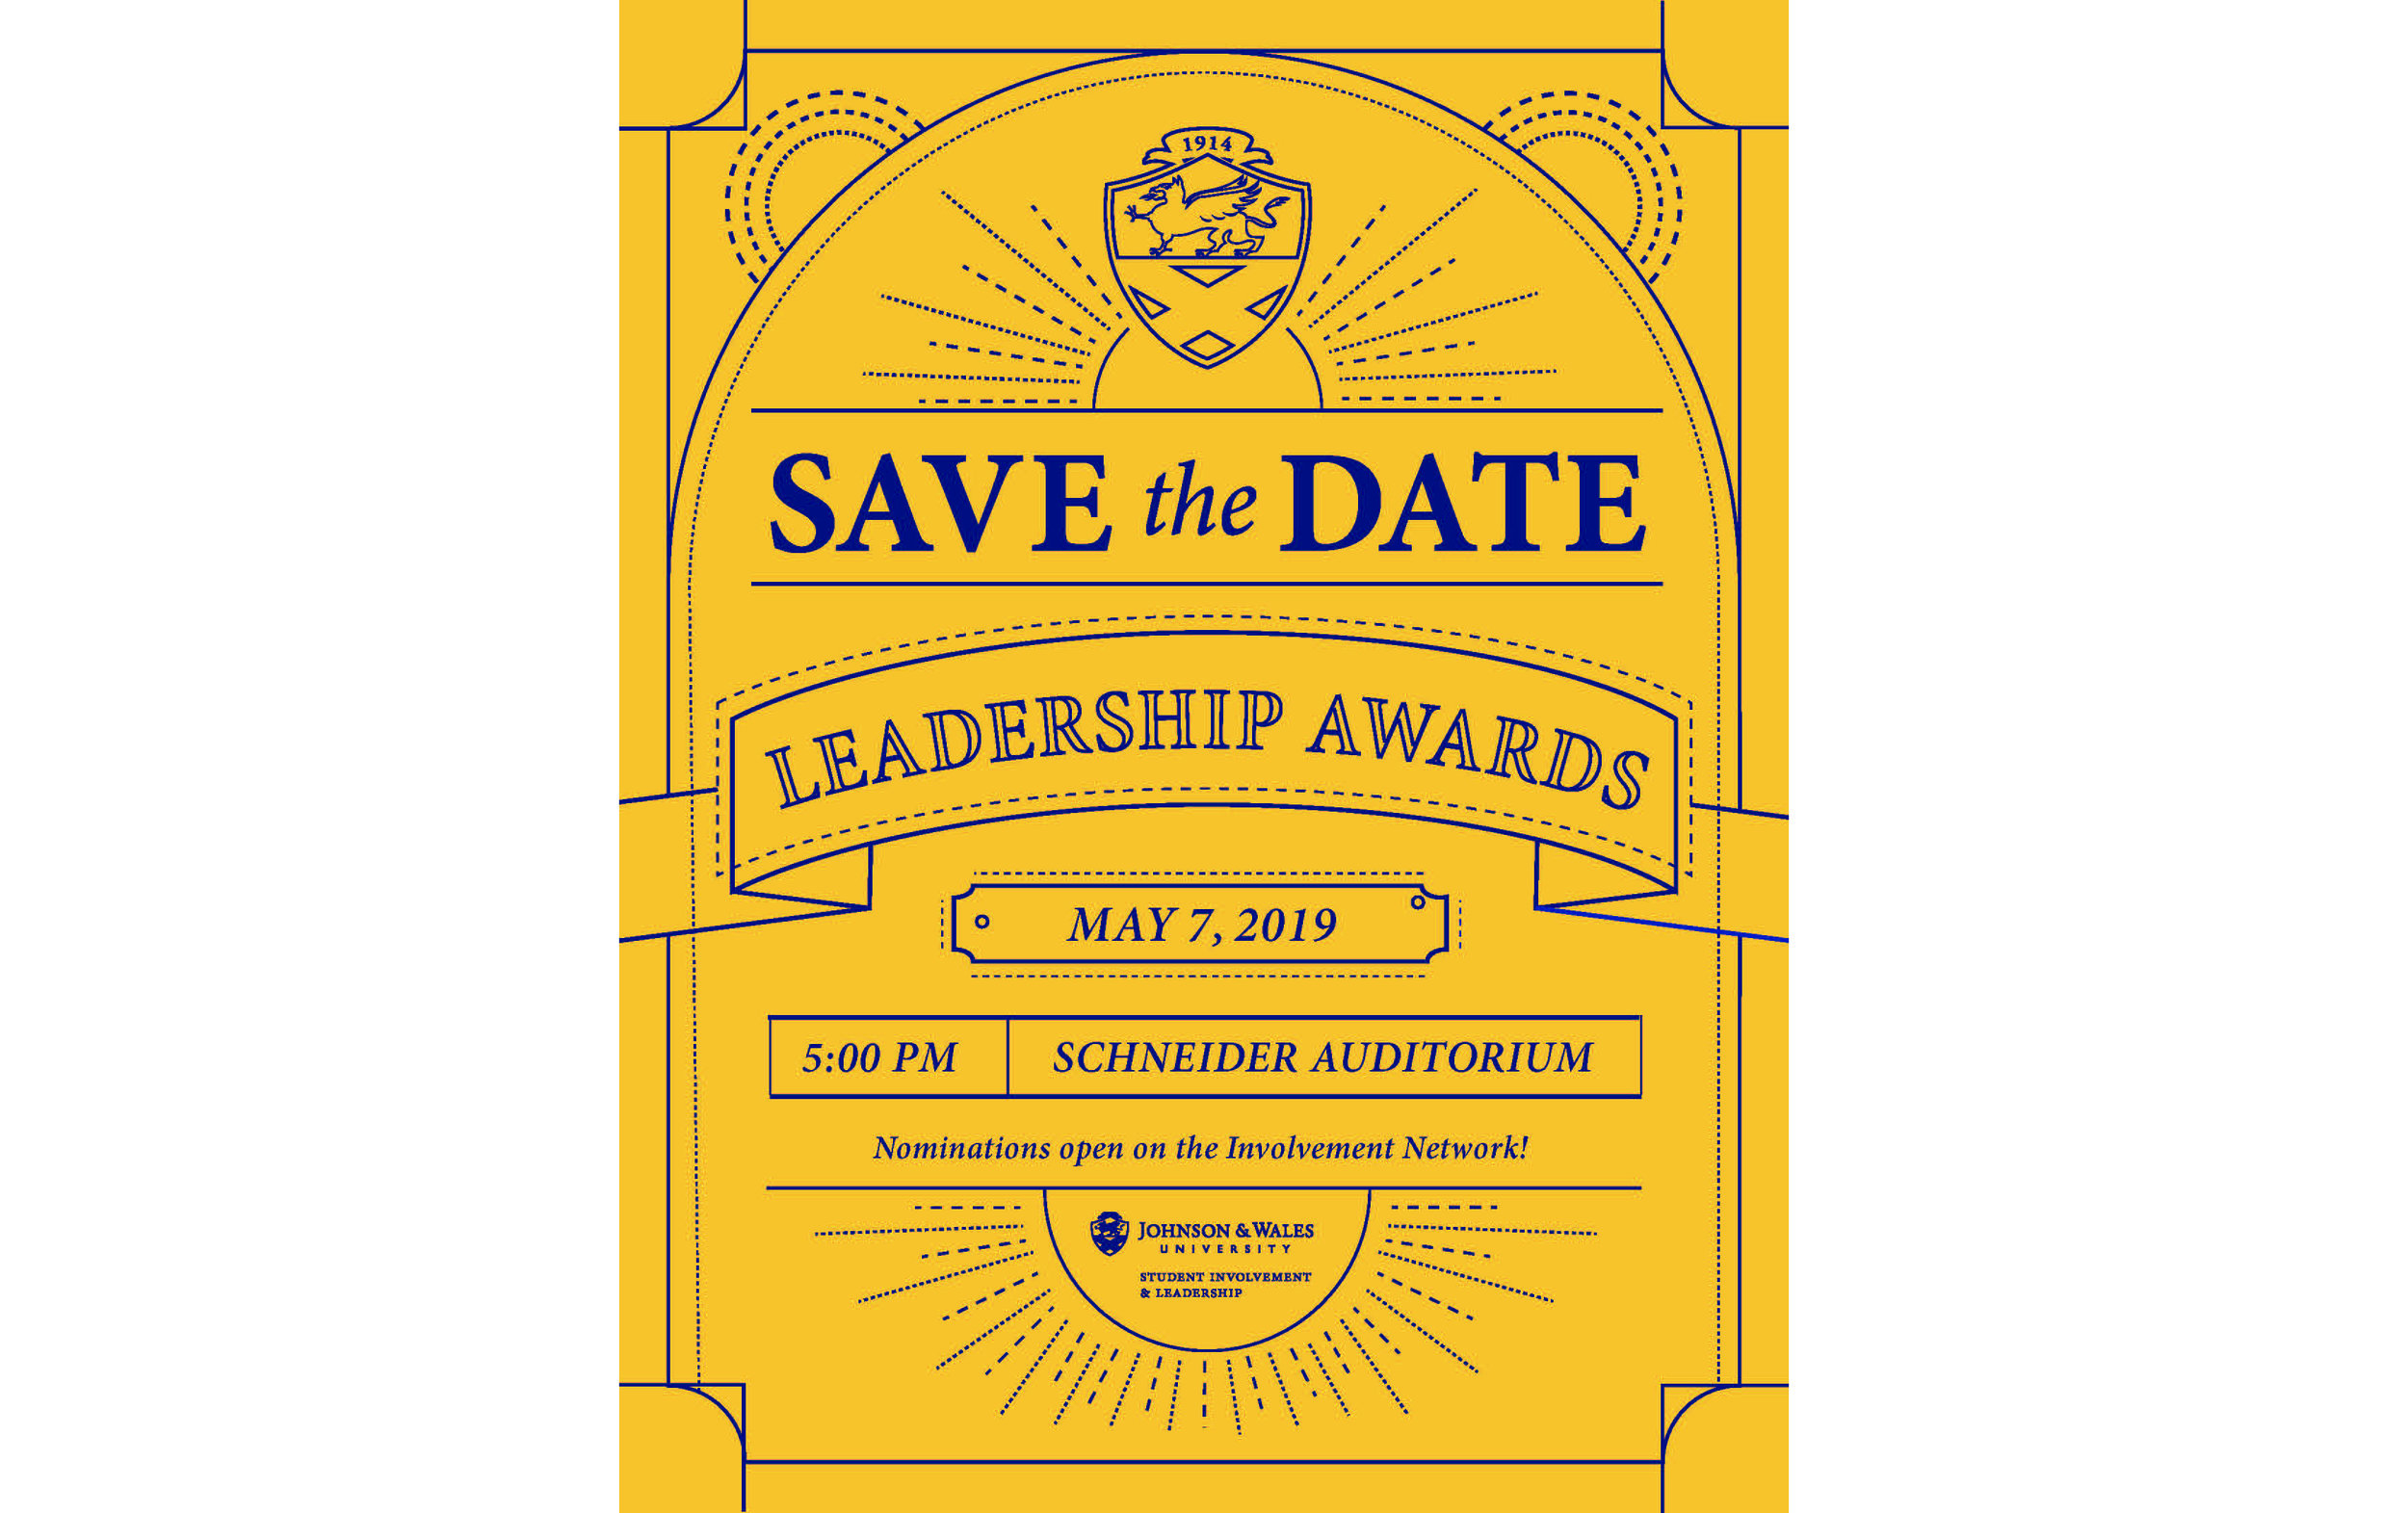 2019 Leadership Awards Save the Date 1.jpg